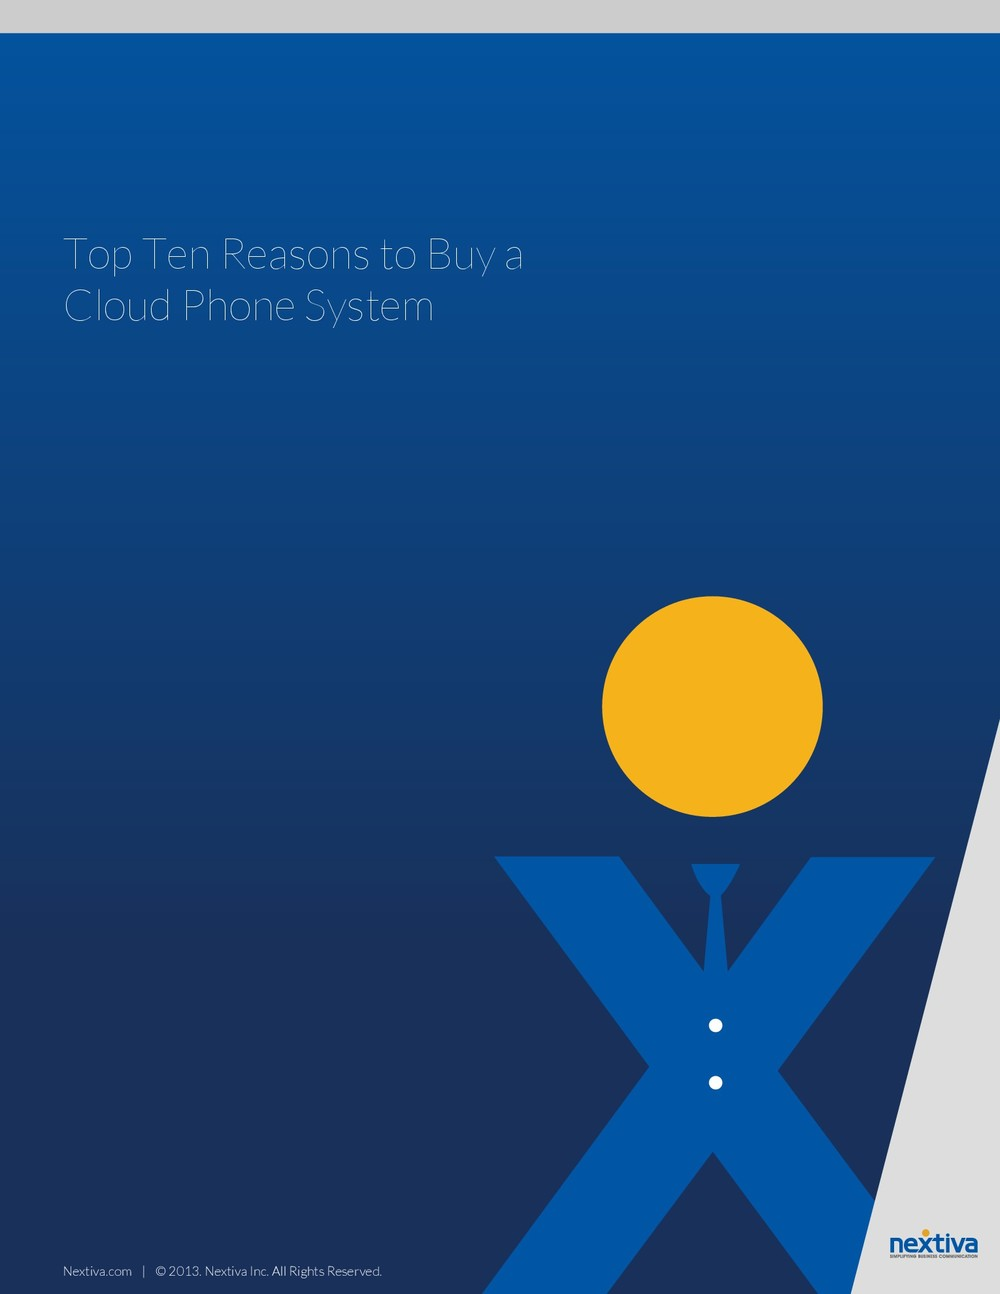 Top Ten Reasons to Buy a Cloud Phone System